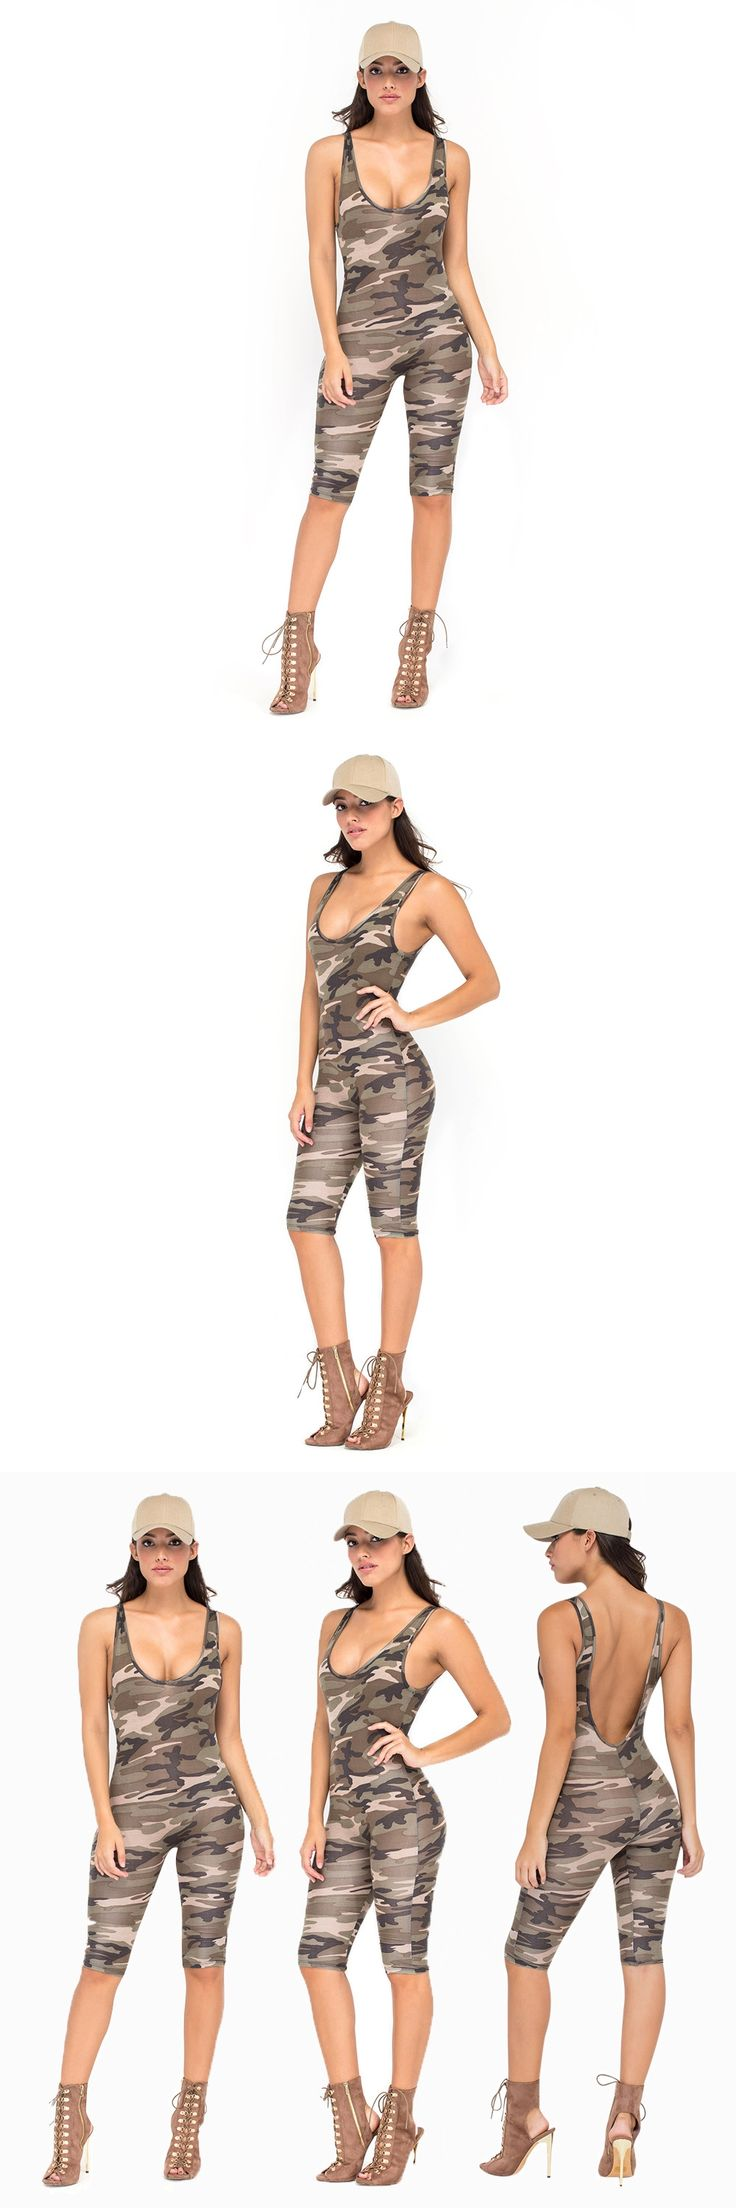 Hot 2016 Sexy Women Jumpsuits explosion models sexy camouflage coveralls pants Jumpsuit Bandage Club Macacoes monos